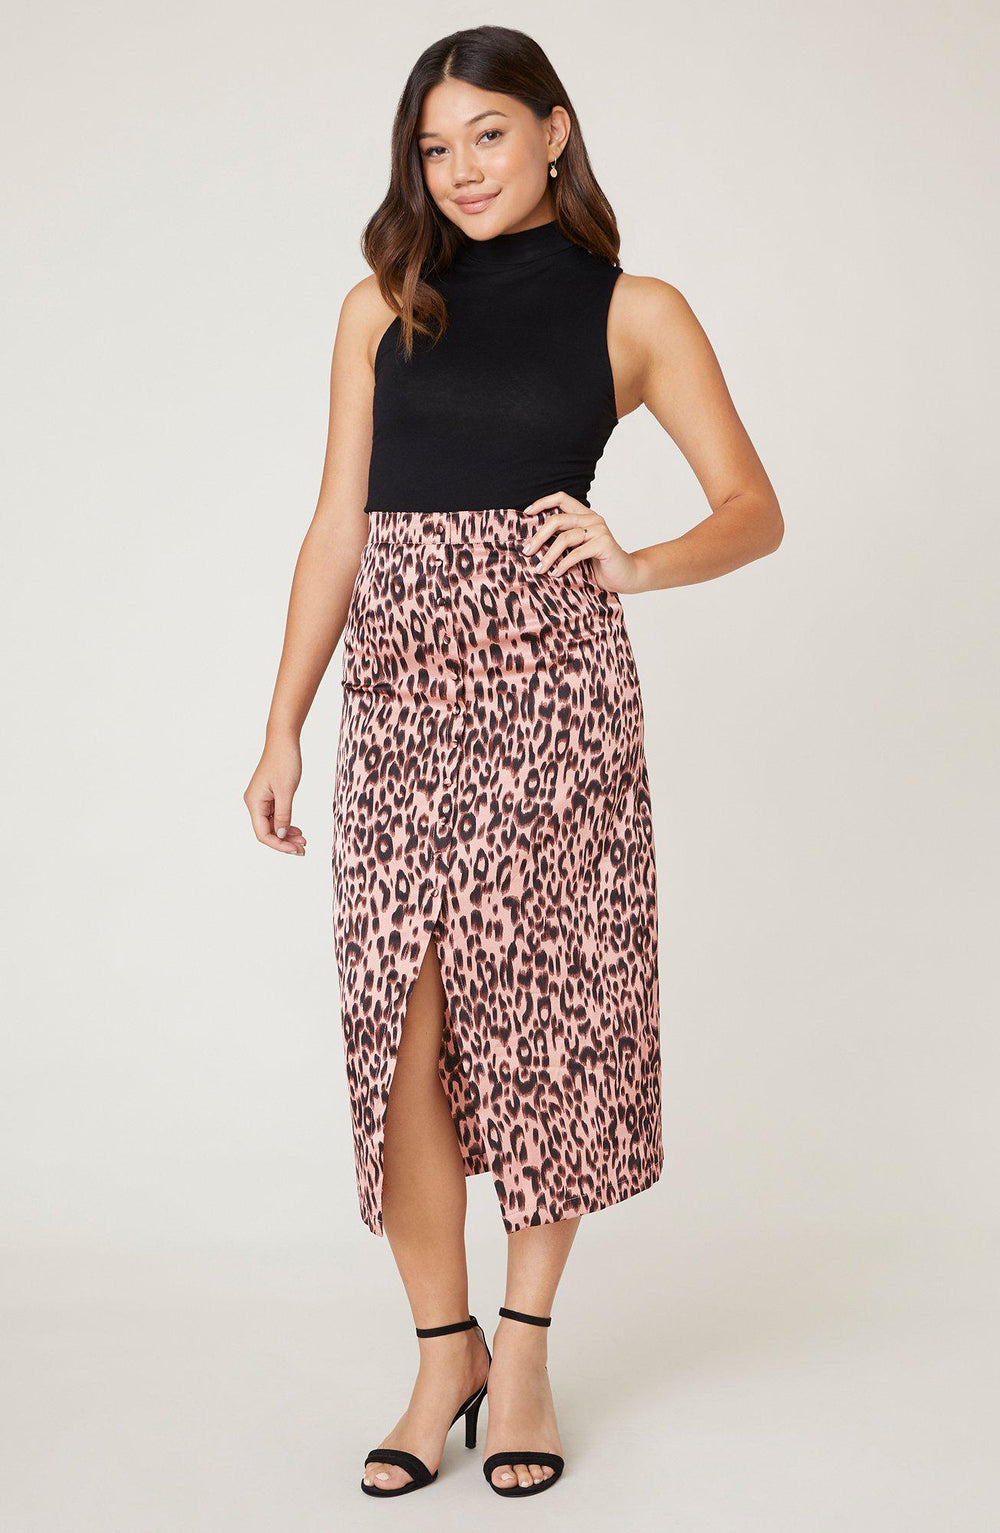 Jack Spotty By Nature Leopard Print Midi Skirt-The Trendy Walrus